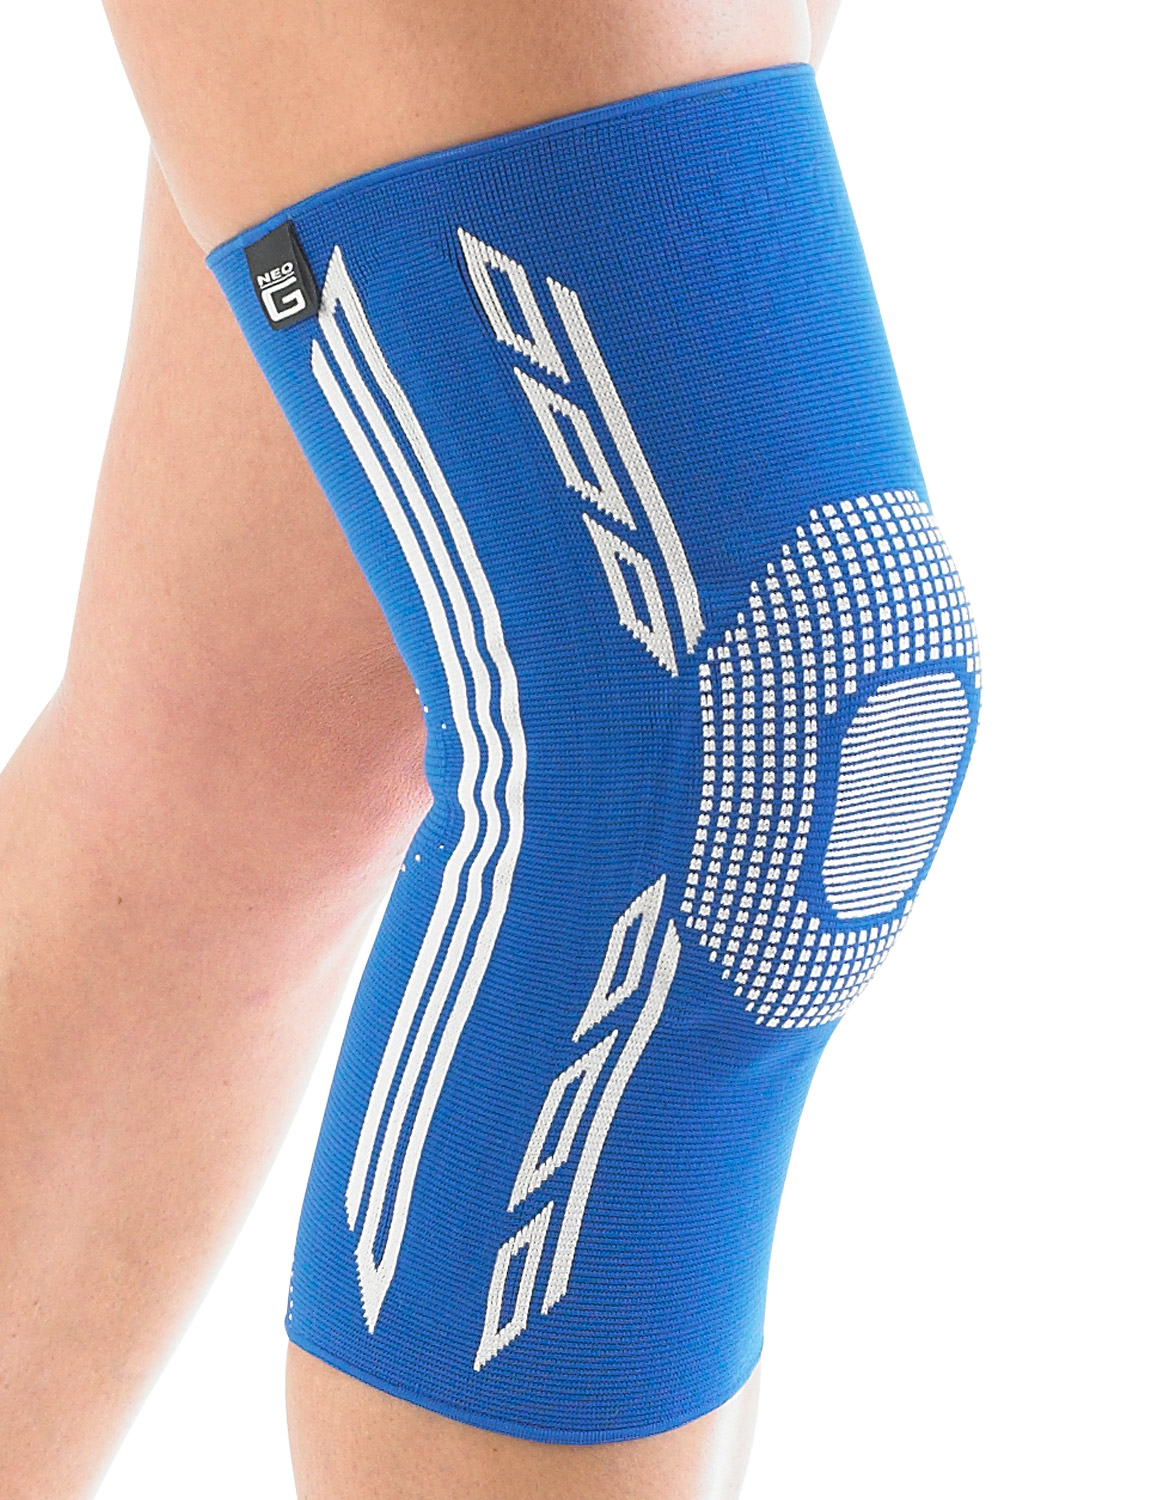 453 - KNEE SUPPORT WITH SILICONE PATELLA CUSHION  Lightweight, breathable and seamless knit fabric provides Multi Zone Compression (MZC) for optimum fit, comfort and durability. Silicone dots around top of support help reduce travel and slipping during everyday movement. Specialist breathable fabric helps with moisture control & comfort. The product fits the Left or Right Knee and is Unisex. This dynamic support helps symptoms of strains, sprains and instability. It helps support injured, weak or arthritic knees. Ideal for sports training and rehabilitation of sporting and occupational injuries whilst also helping reduce the likelihood of re-injury